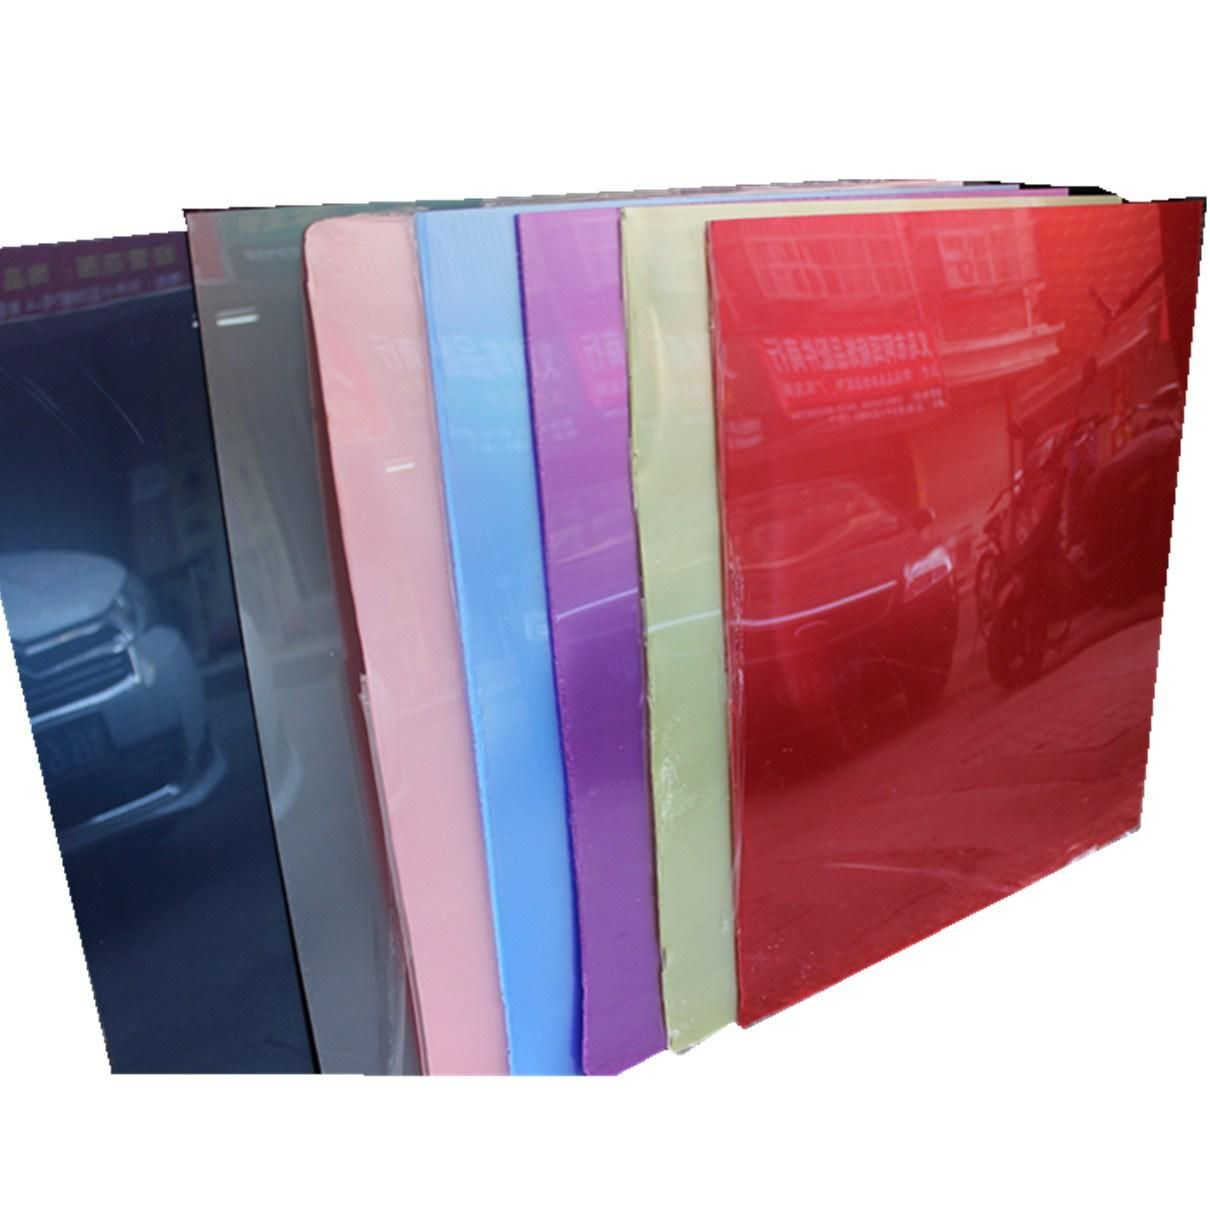 Wholesale Pearlescent Pigments Buy 24 Color High Grade Acrylic Sheet Plexiglass 600mm 500mm Transparent And Clear Reflec Acrylic Sheets Plexiglass Acrylic